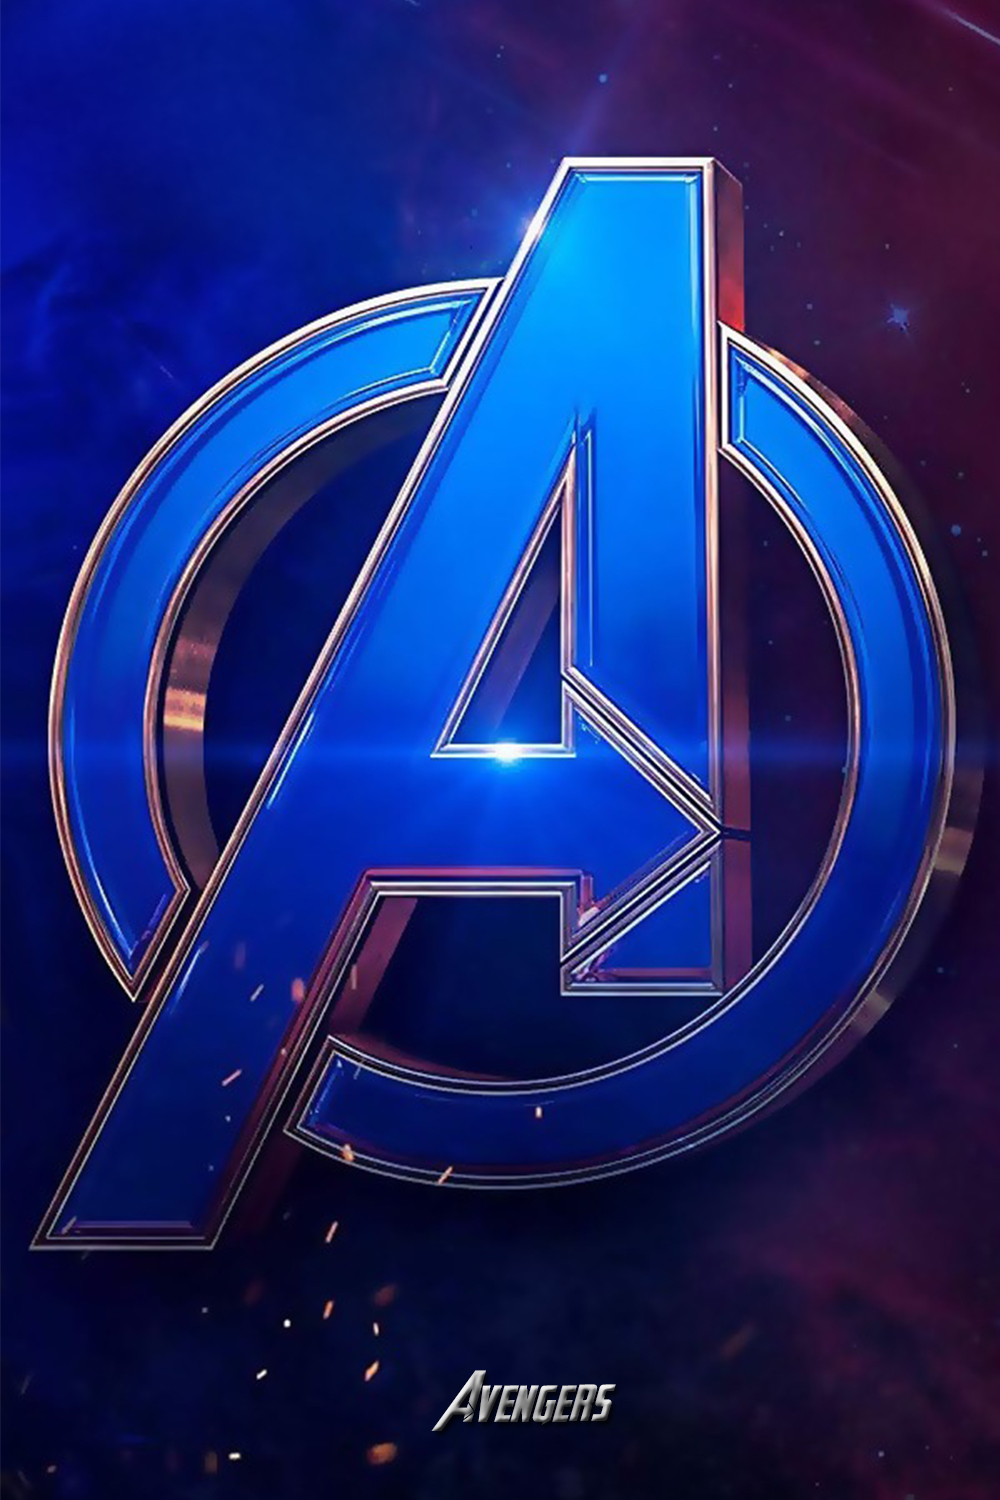 Avengers Wallpaper for Mobile HD Download in 2020 Avengers 1000x1500